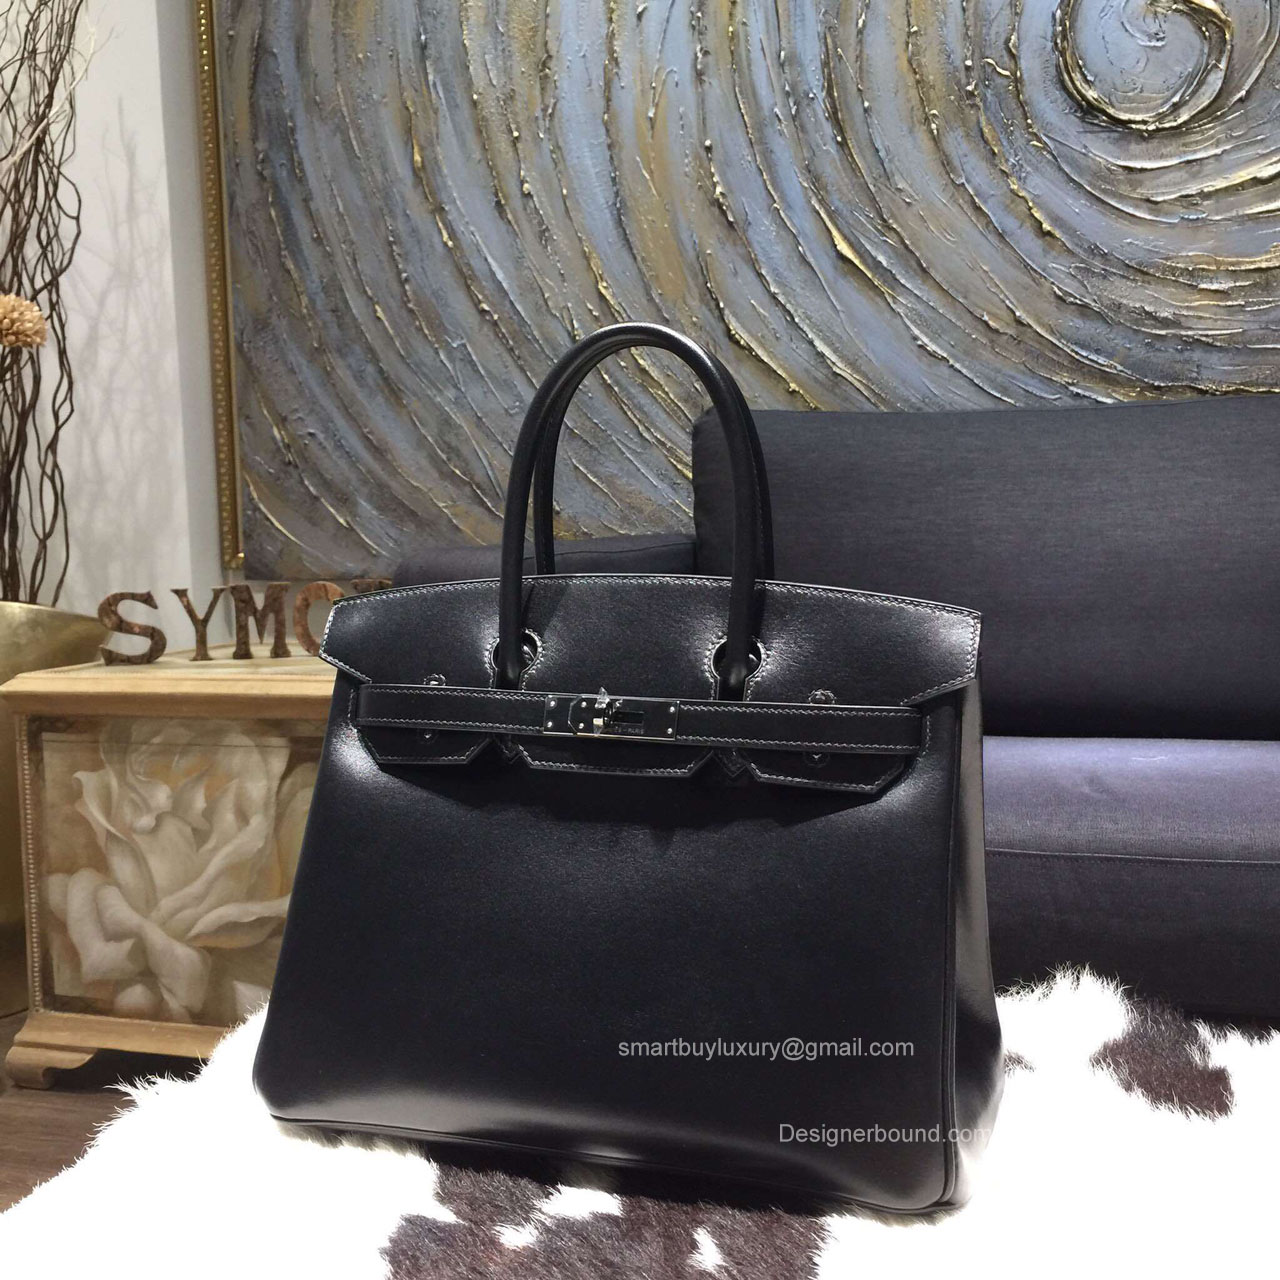 Hermes Birkin 35 Bag Black Box Leather Handstitched Silver hw